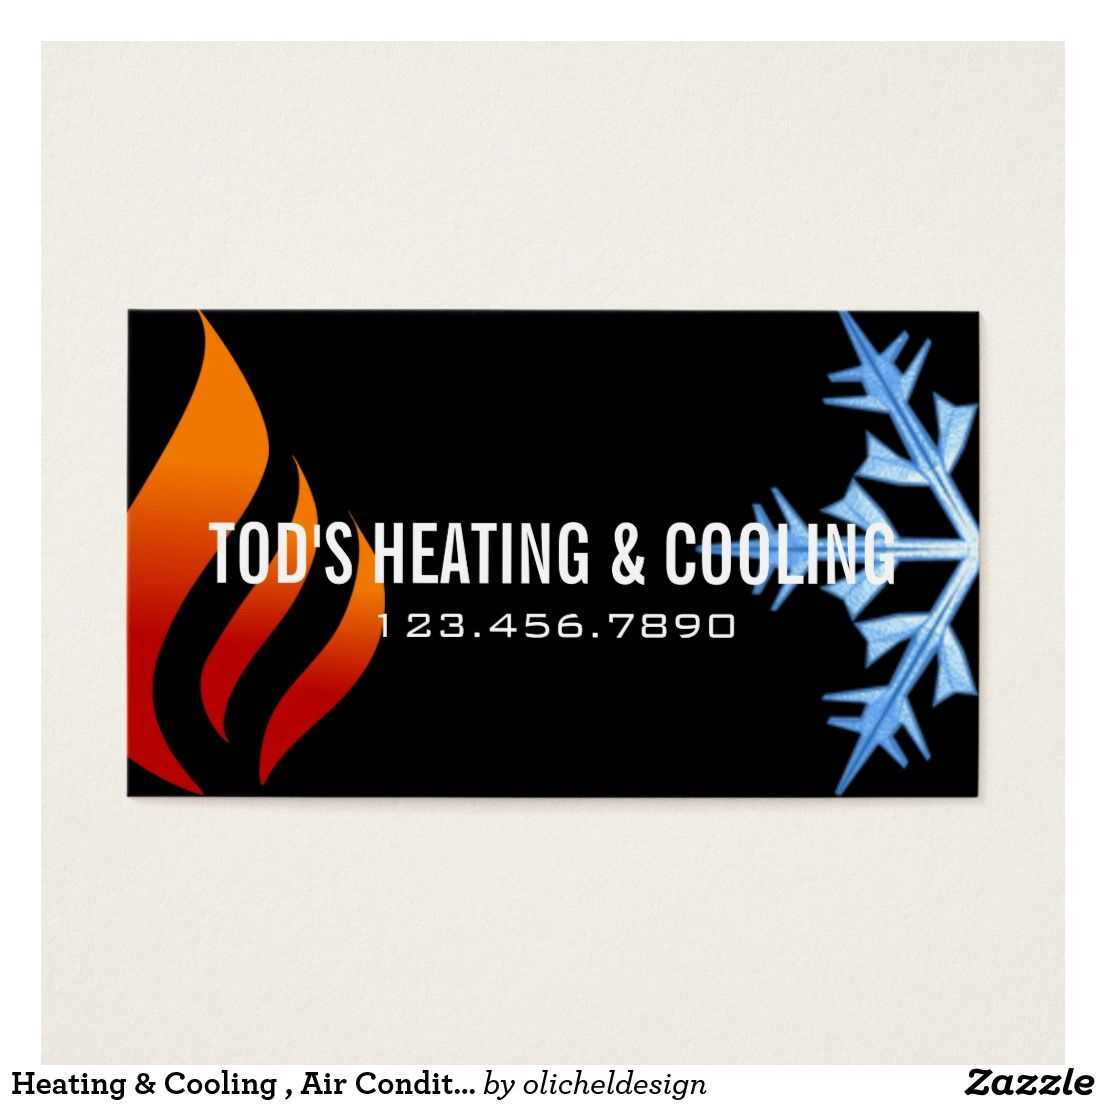 Heating & Cooling , Air Conditioning Hvac Business Card in Hvac Business Card Template